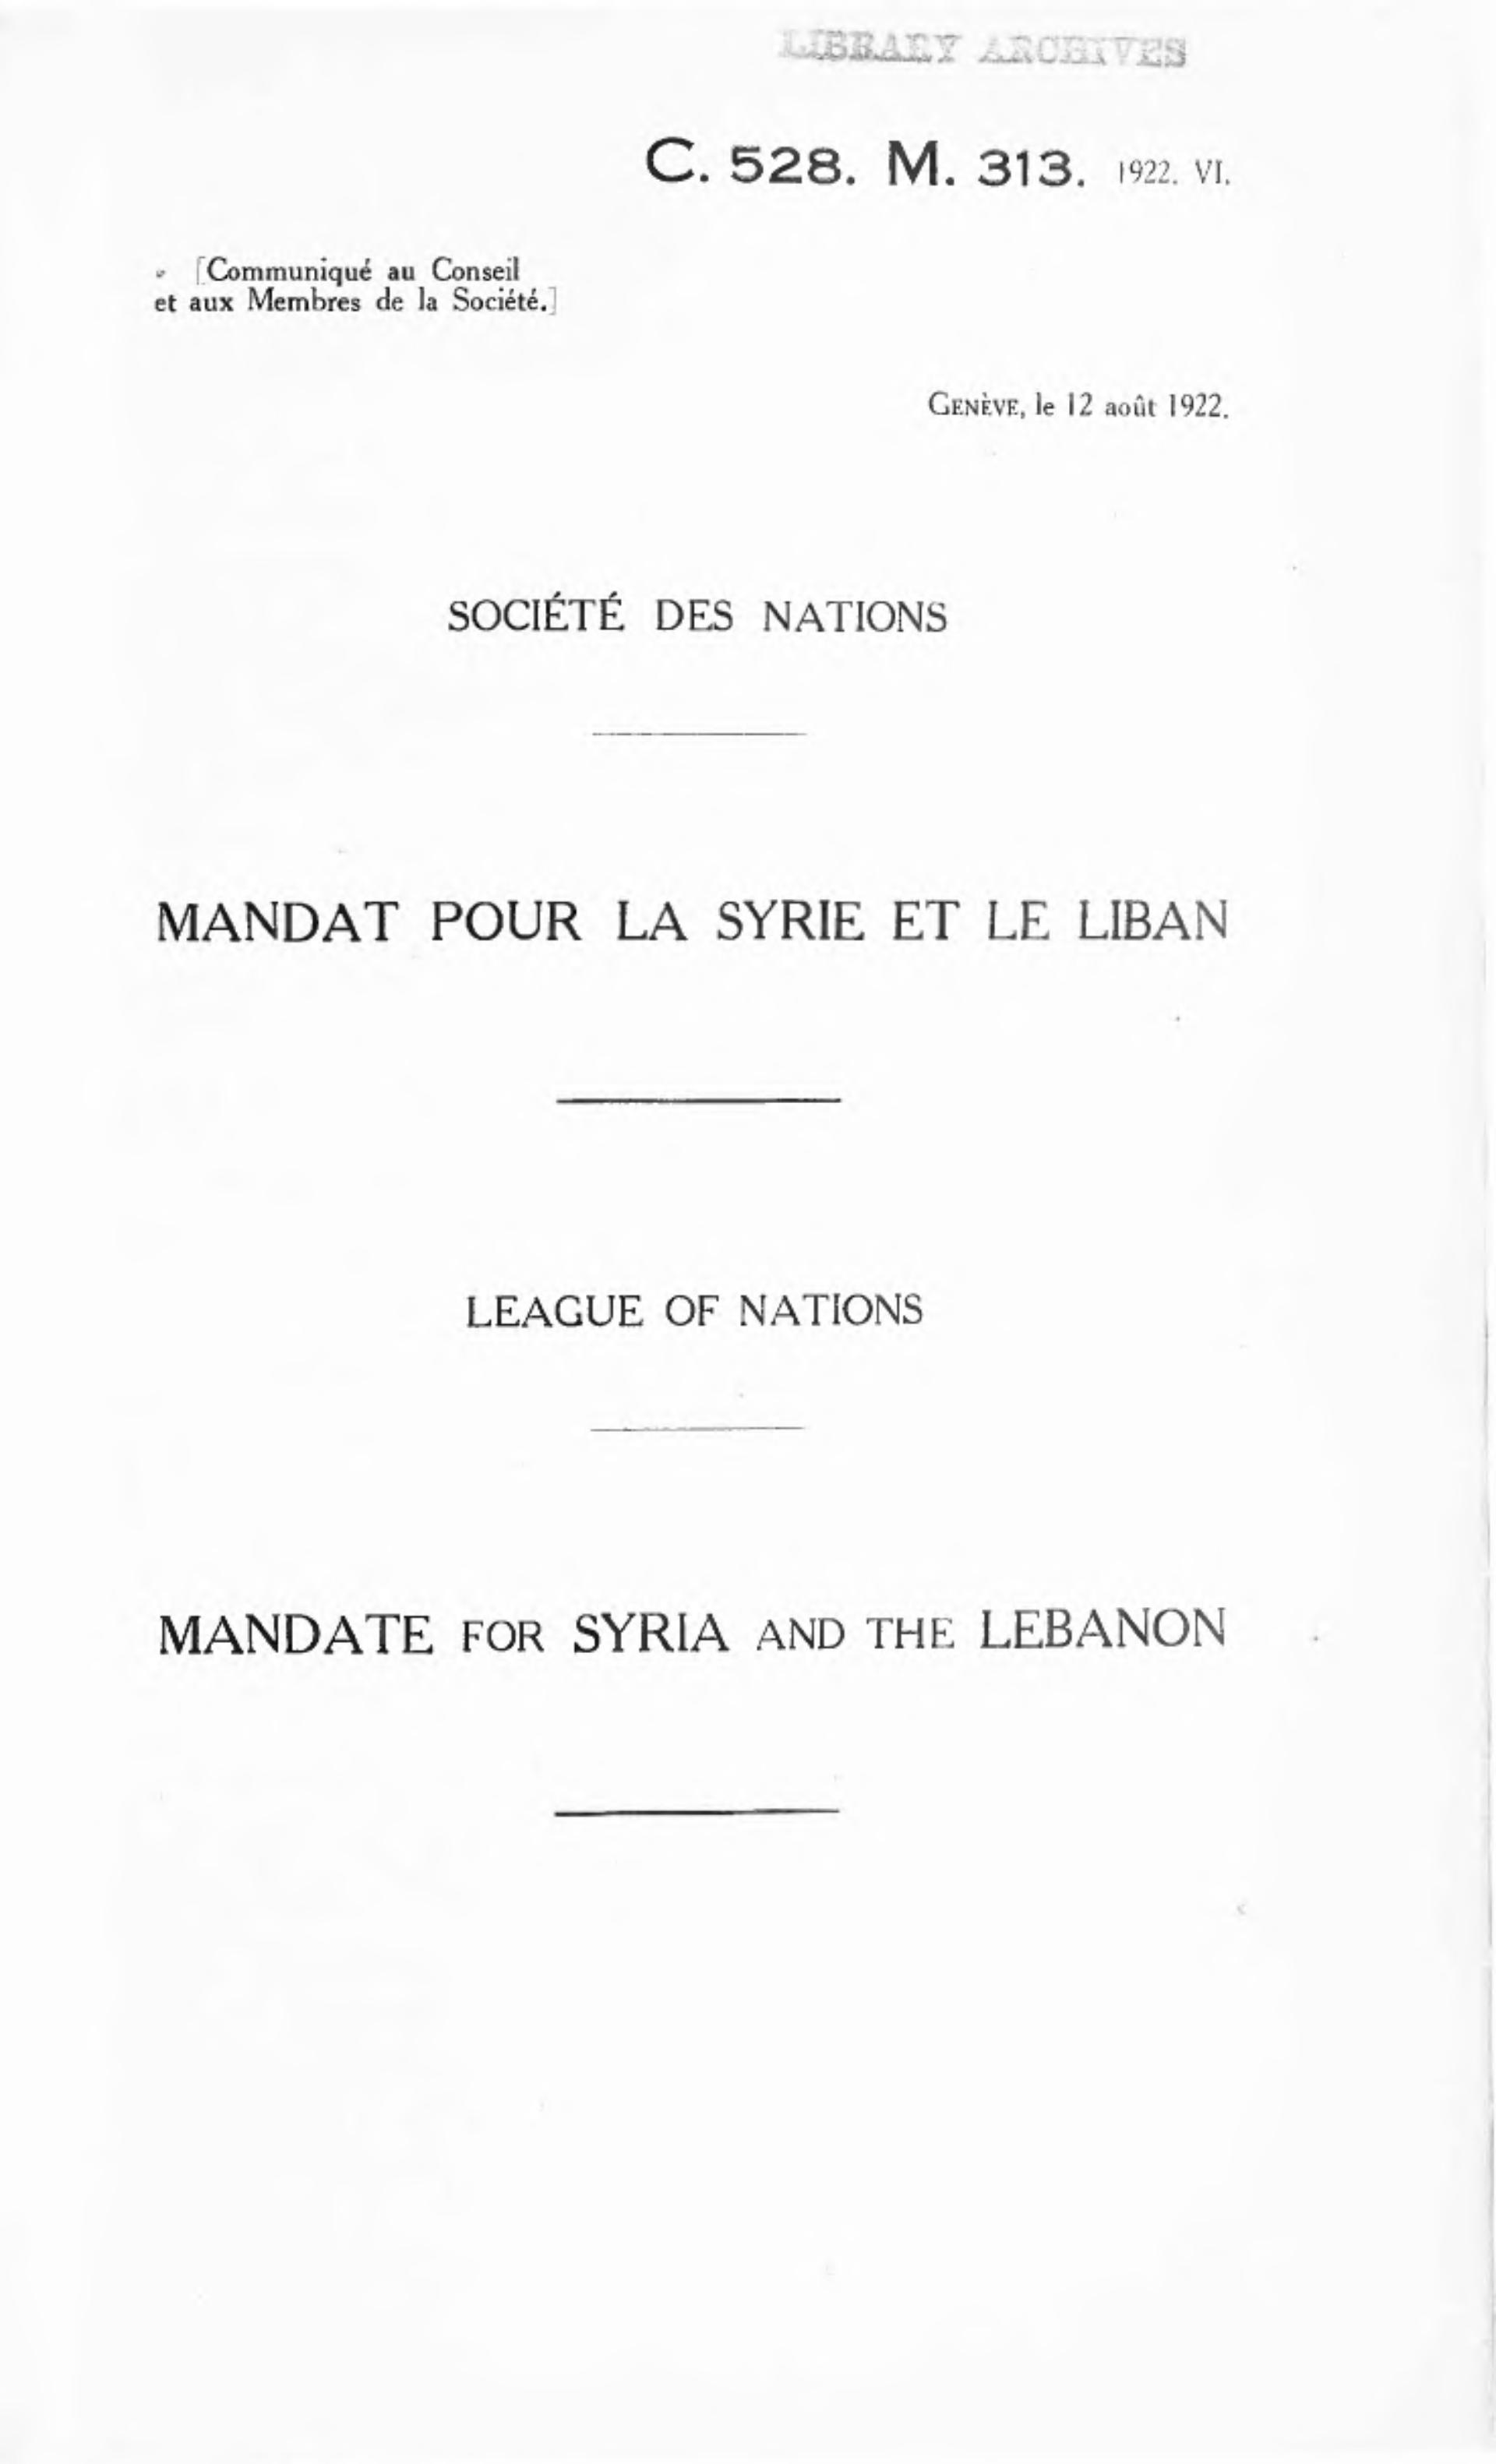 French Mandate For Syria And The Lebanon Wikipedia